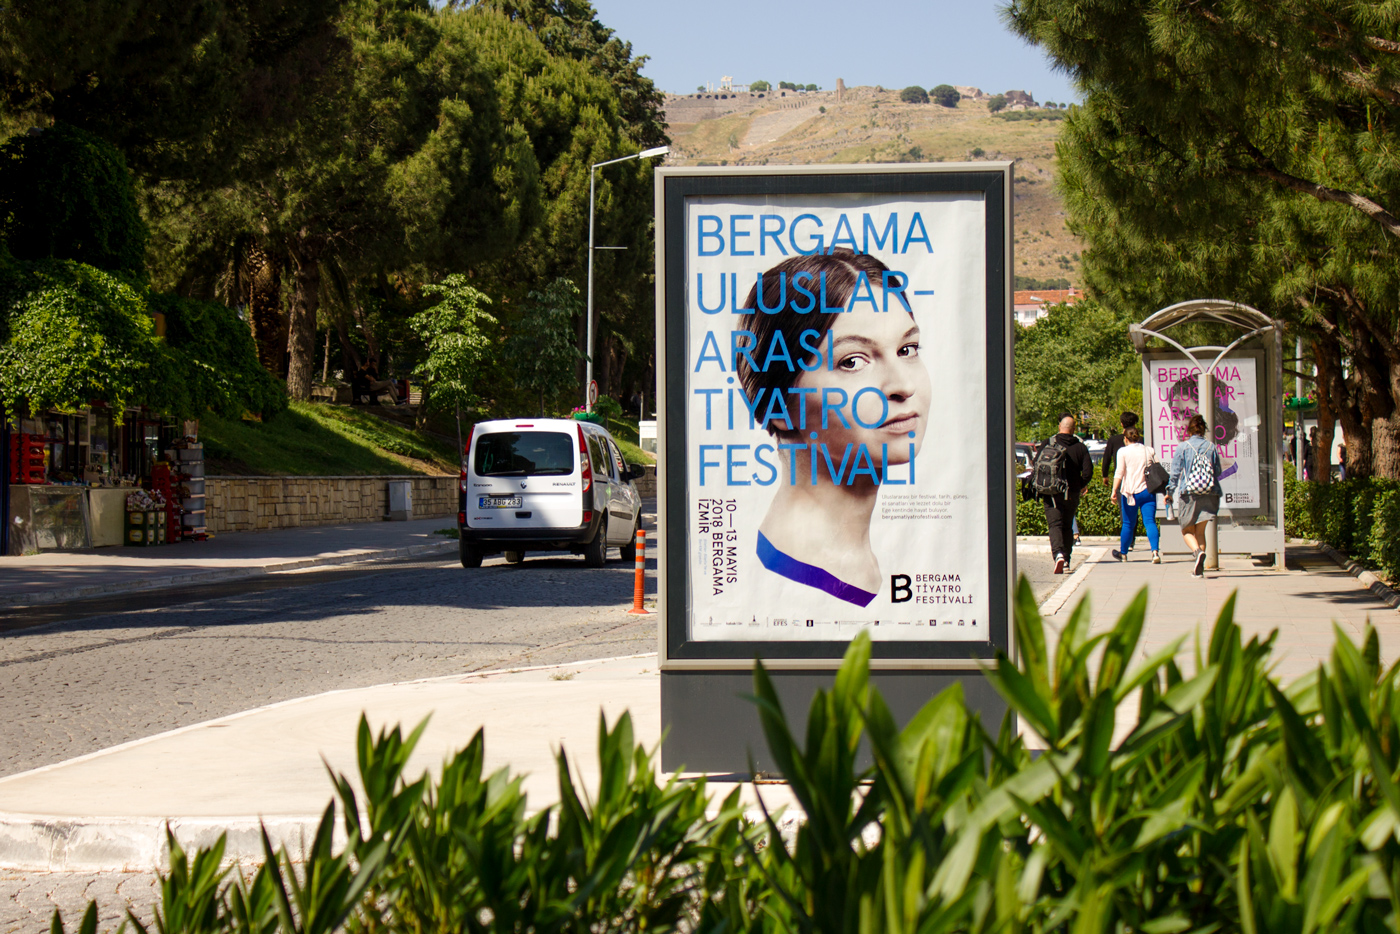 Bergama Theatre Festival Key Visuals